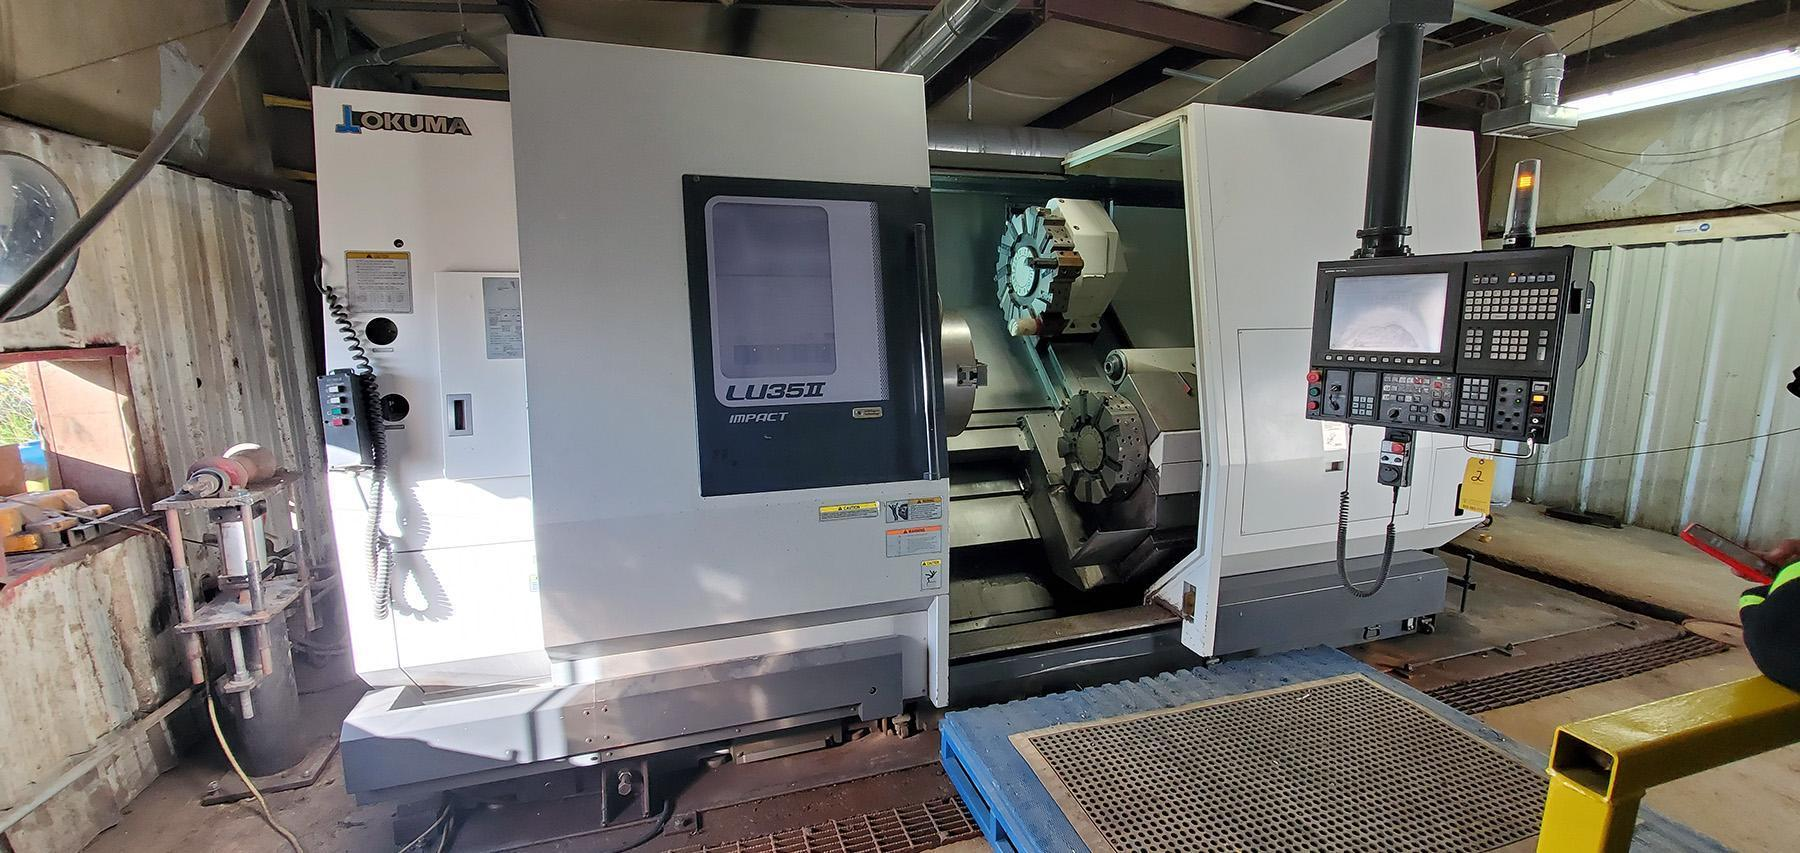 USED, OKUMA LU35-II SUPER BIG BORE FOUR AXIS CNC LATHE, 2000 hrs., 